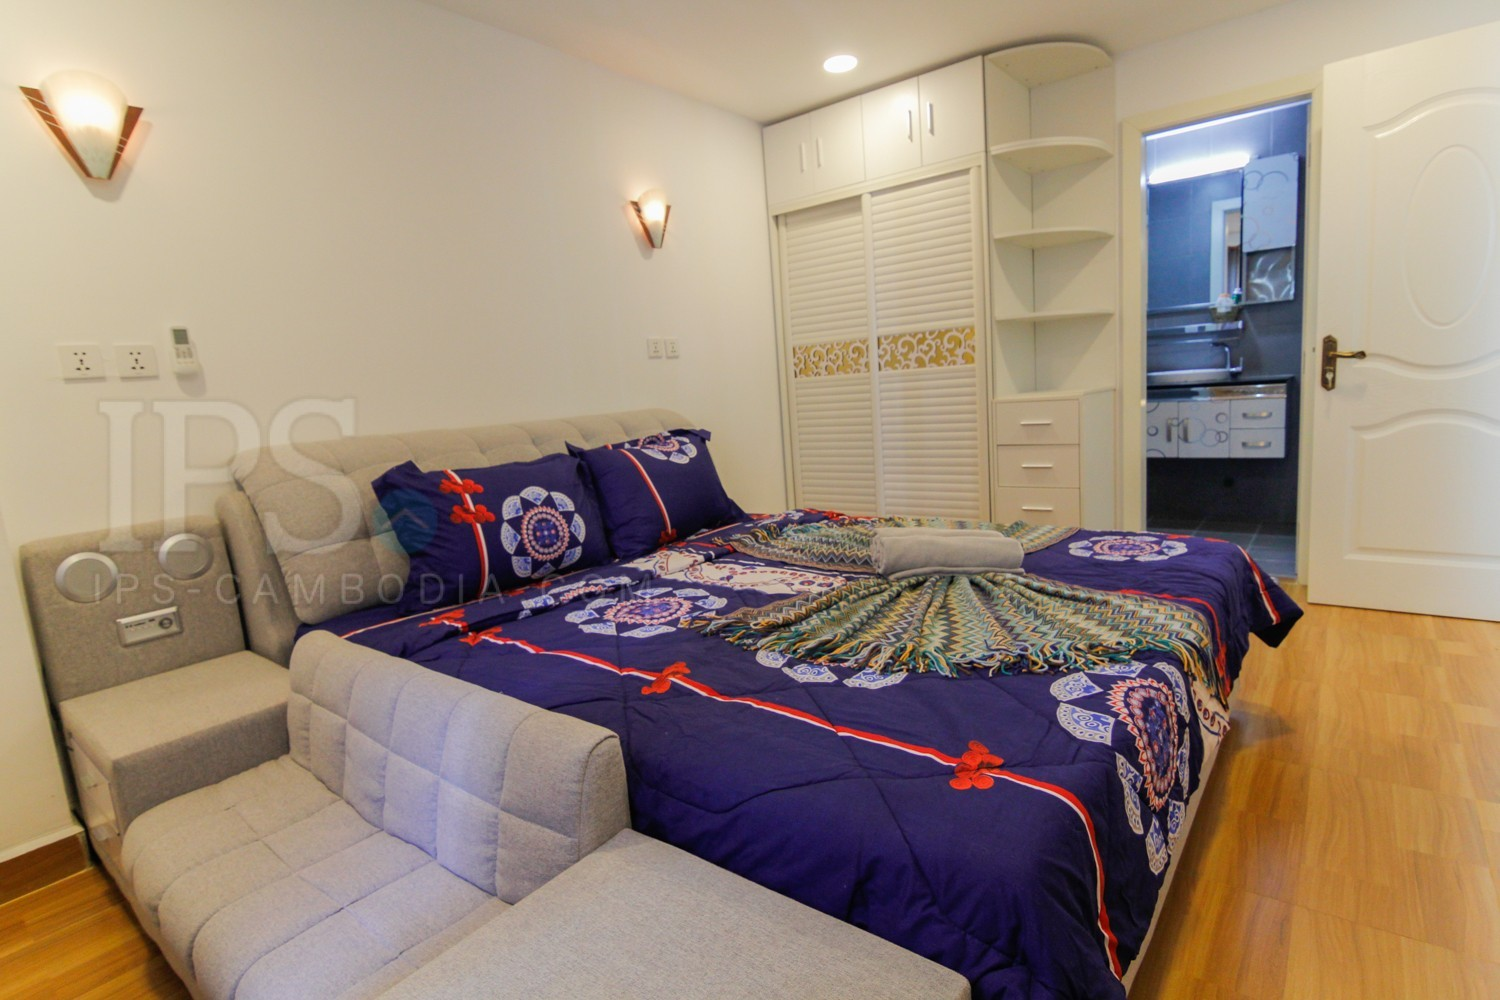 2 Bedroom Condo Unit For Sale - Svay Dangkum, Siem Reap